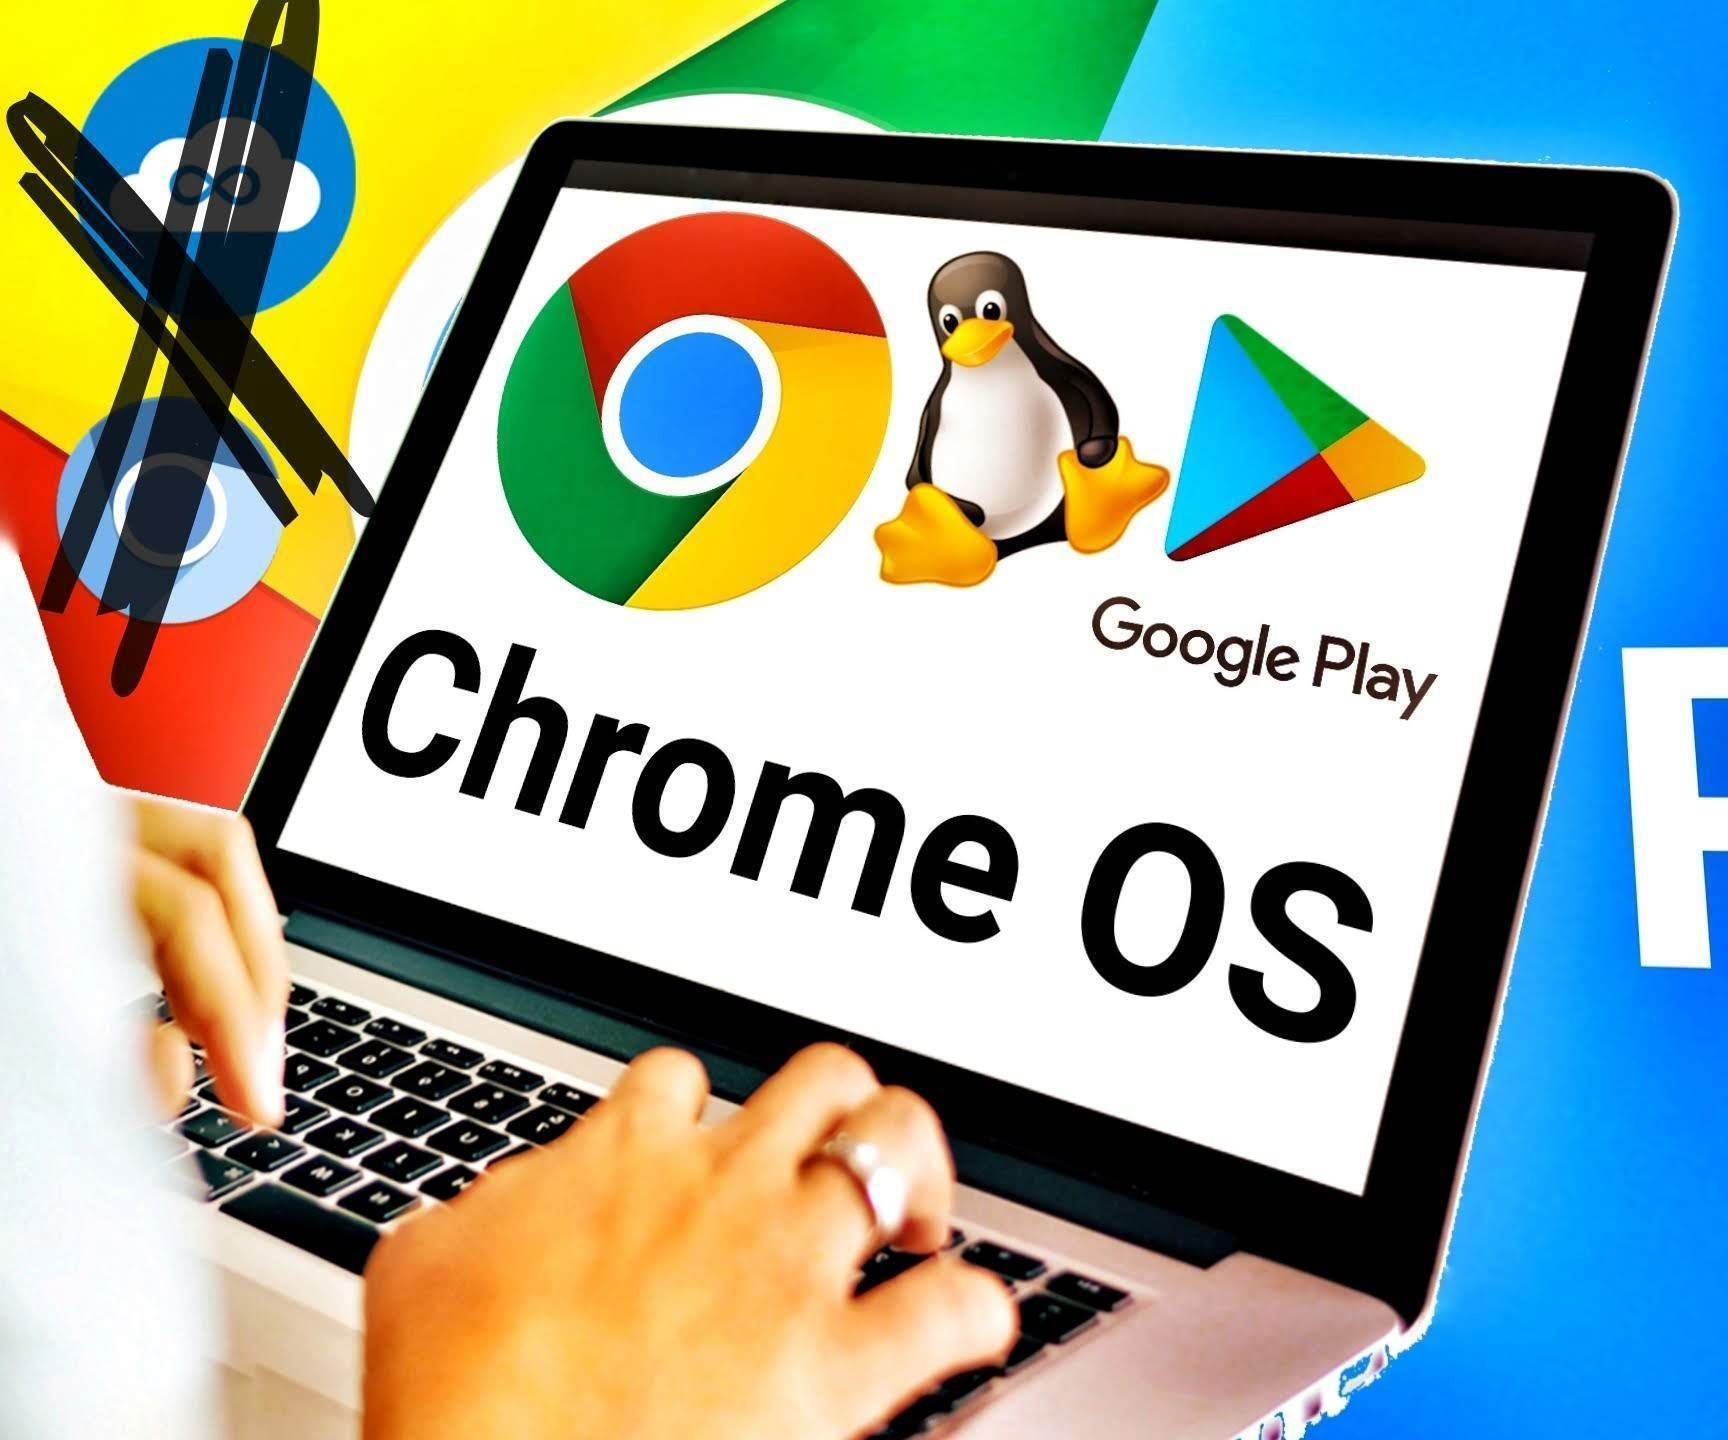 Install Official Google Chrome OS on PC / Laptop With Play Store and Linux for FREE !